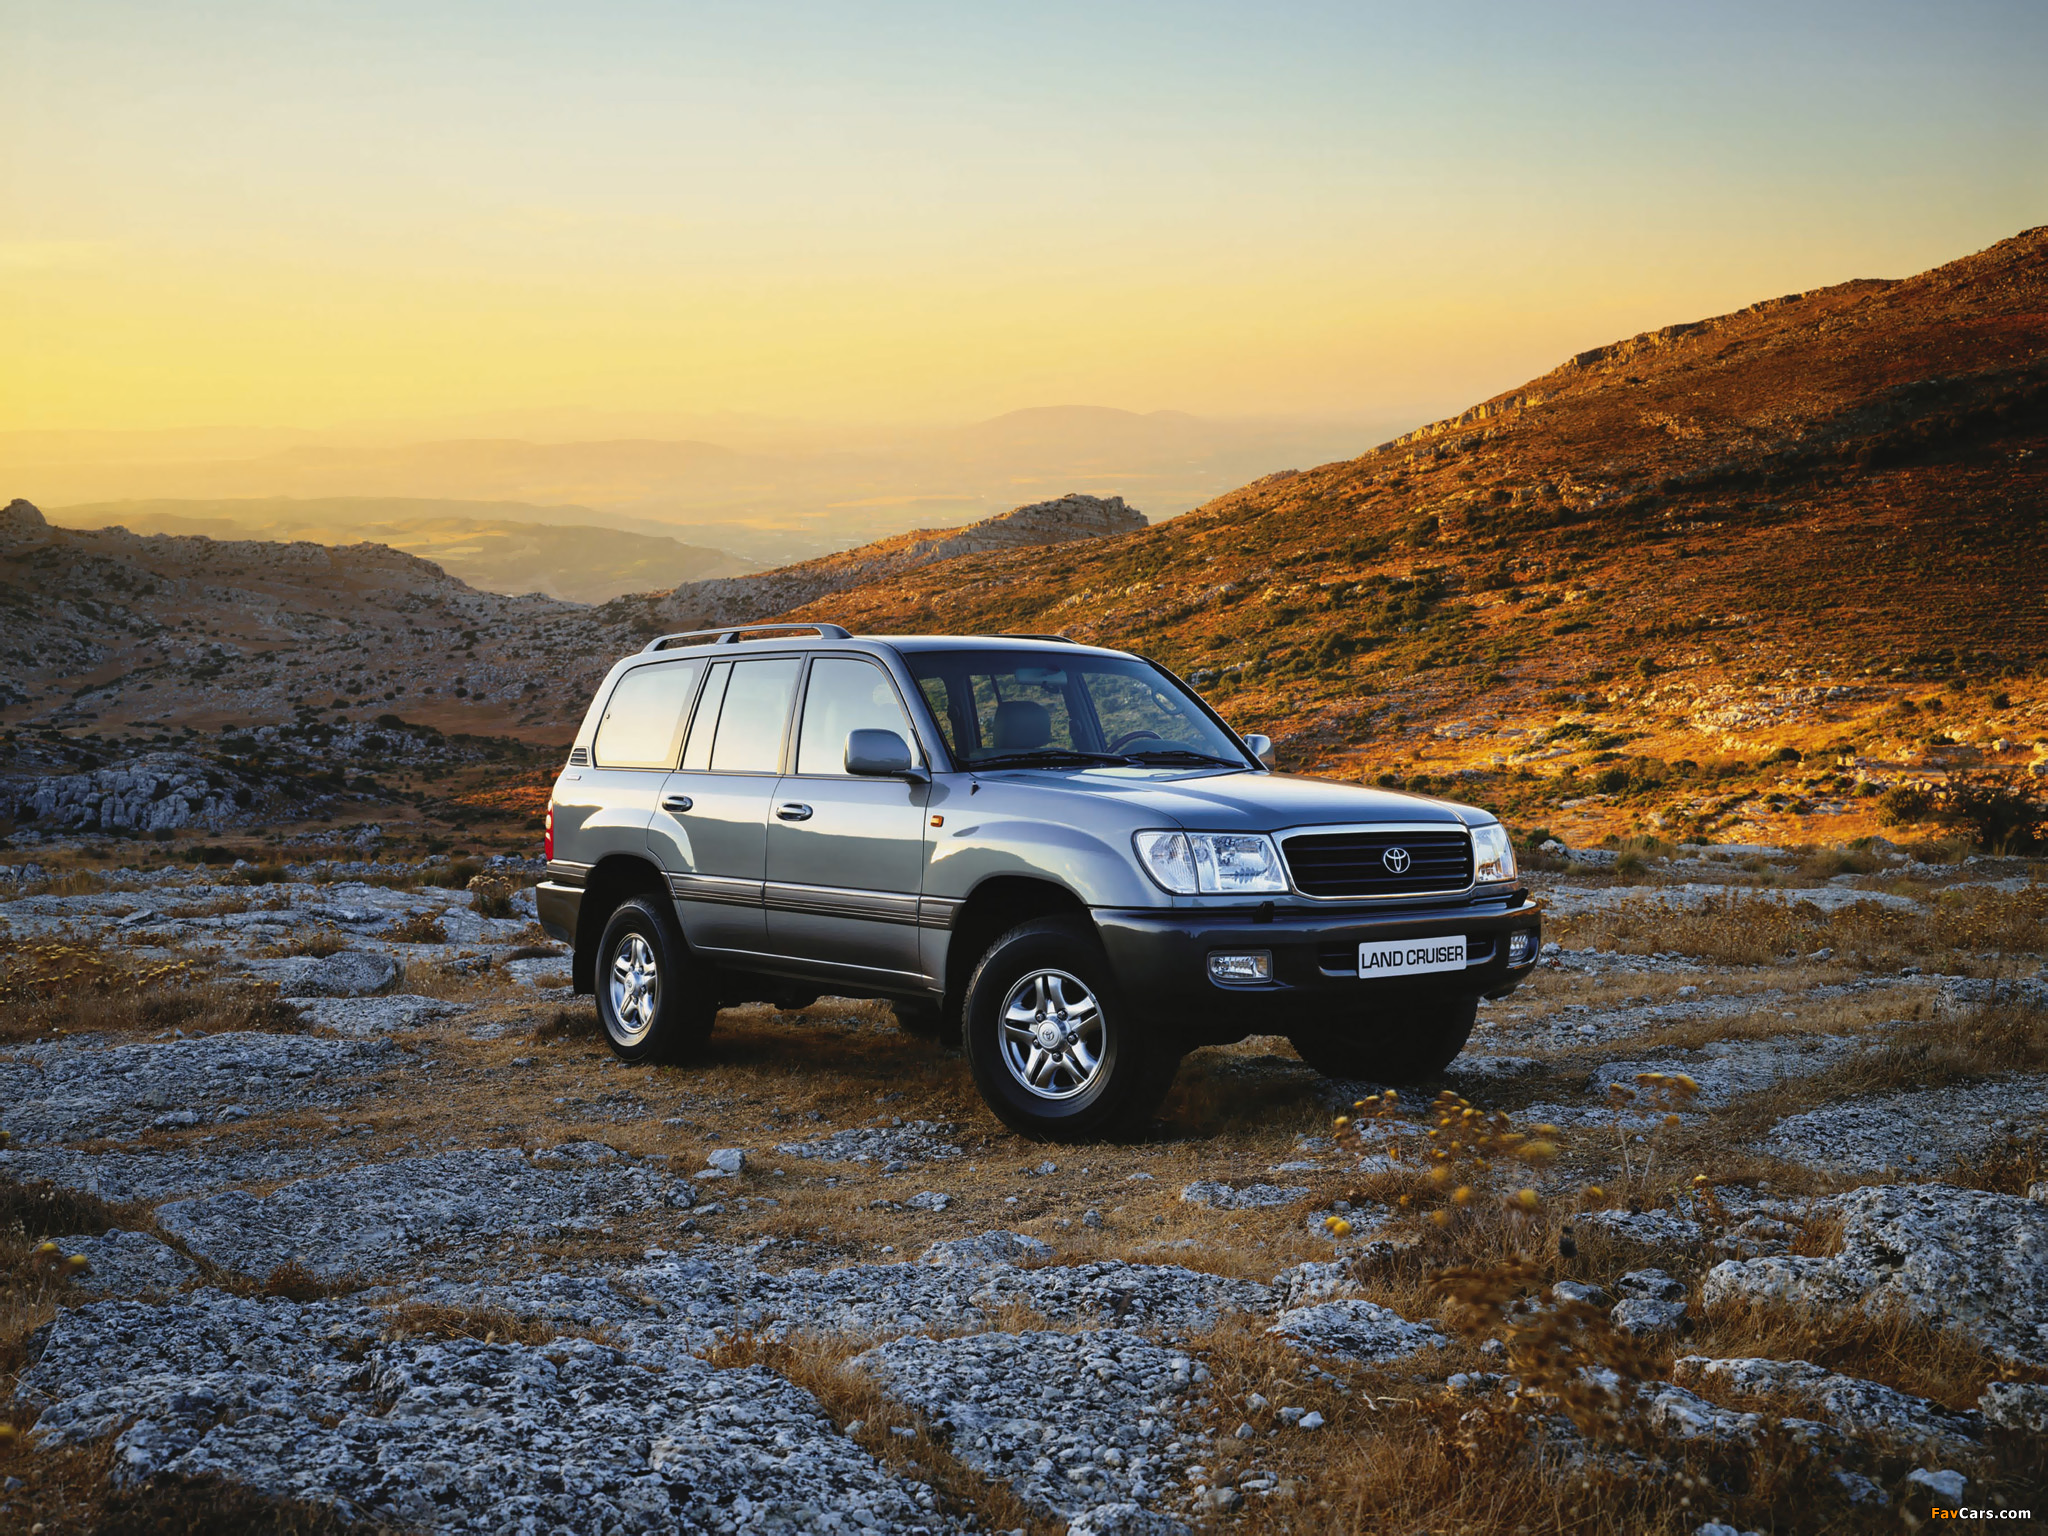 Pictures Of Toyota Land Cruiser 100 50th Anniversary 2001 2048x1536 2048 X 1536